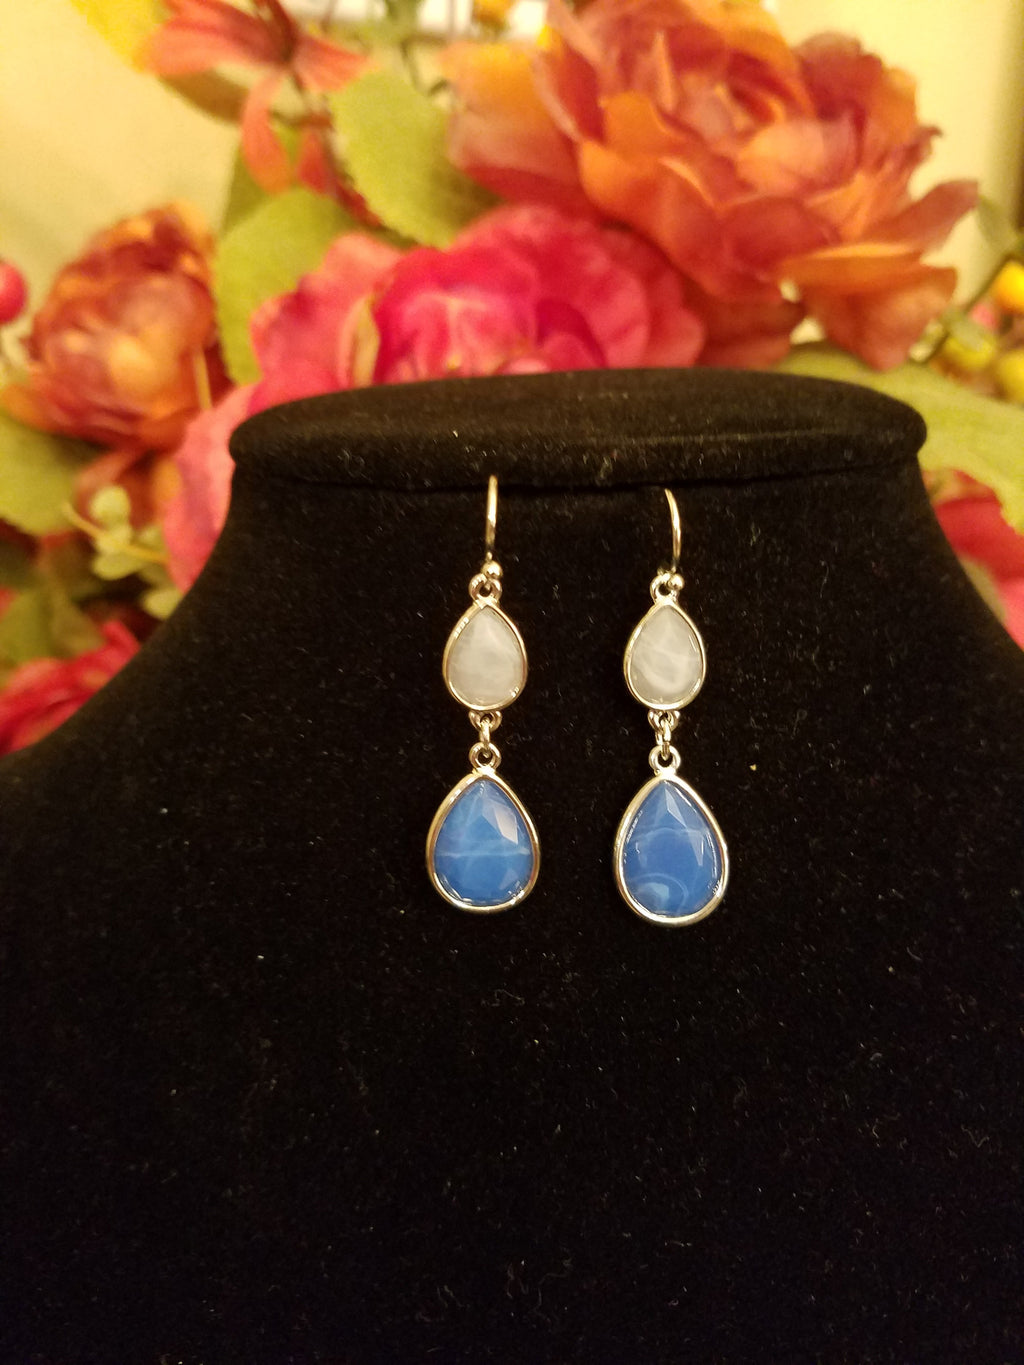 Light Sapphire Blue-Sky Gray Teardrop Dangle Fashion Earrings - Bedazzled By Jeanelle